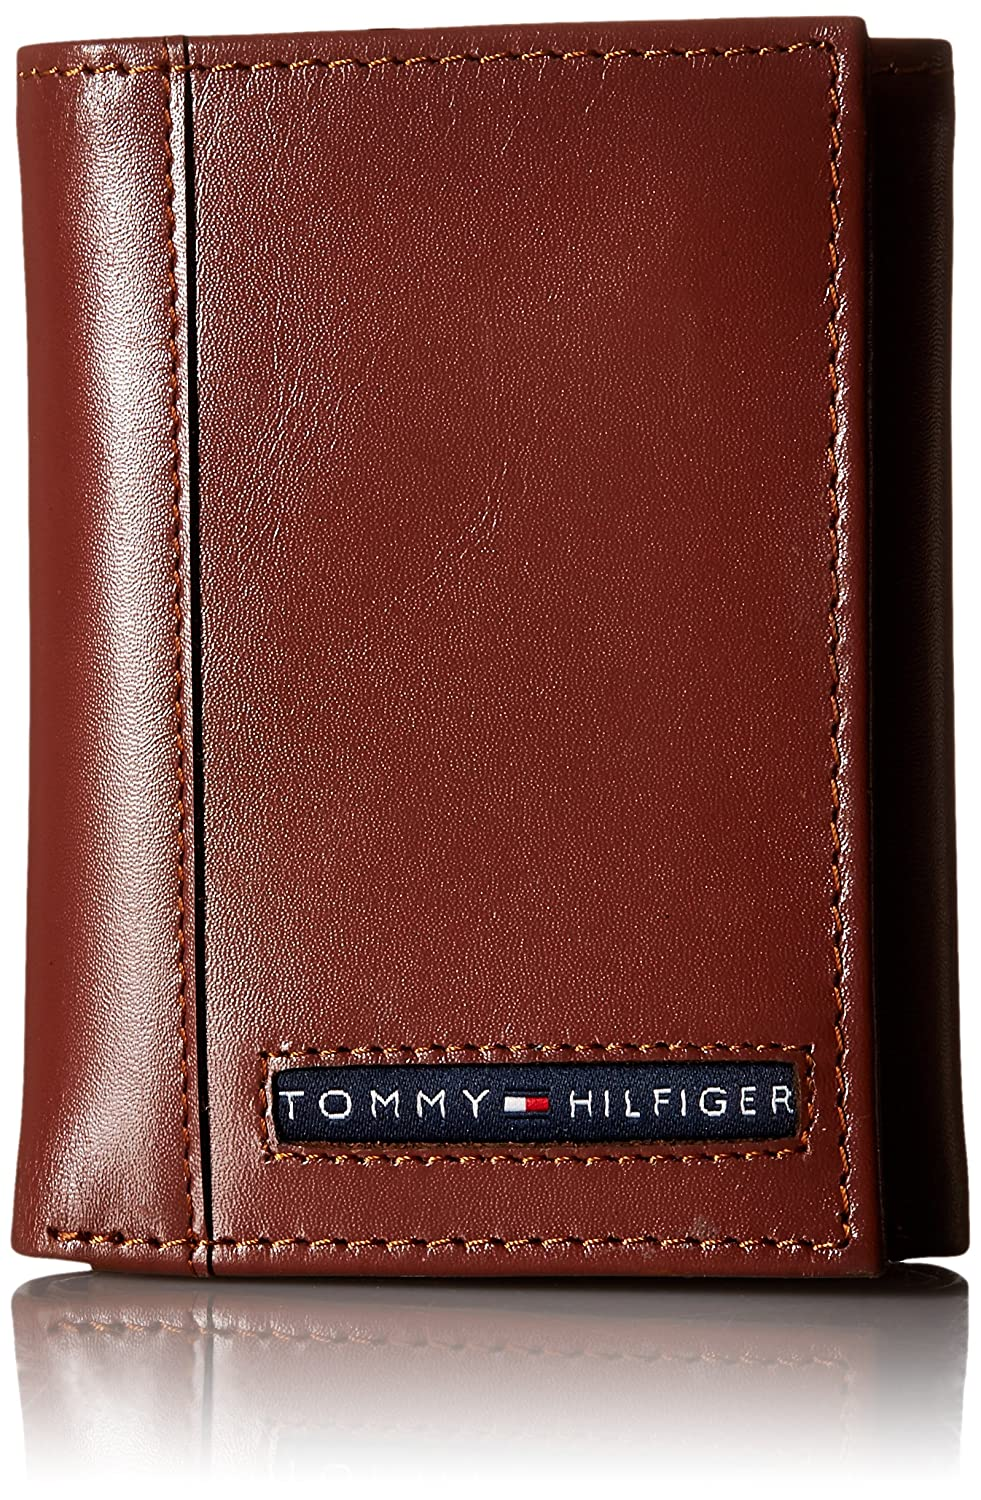 Tommy Hilfiger Men's Leather Cambridge Trifold Wallet, Navy, One Size 31TL11X033